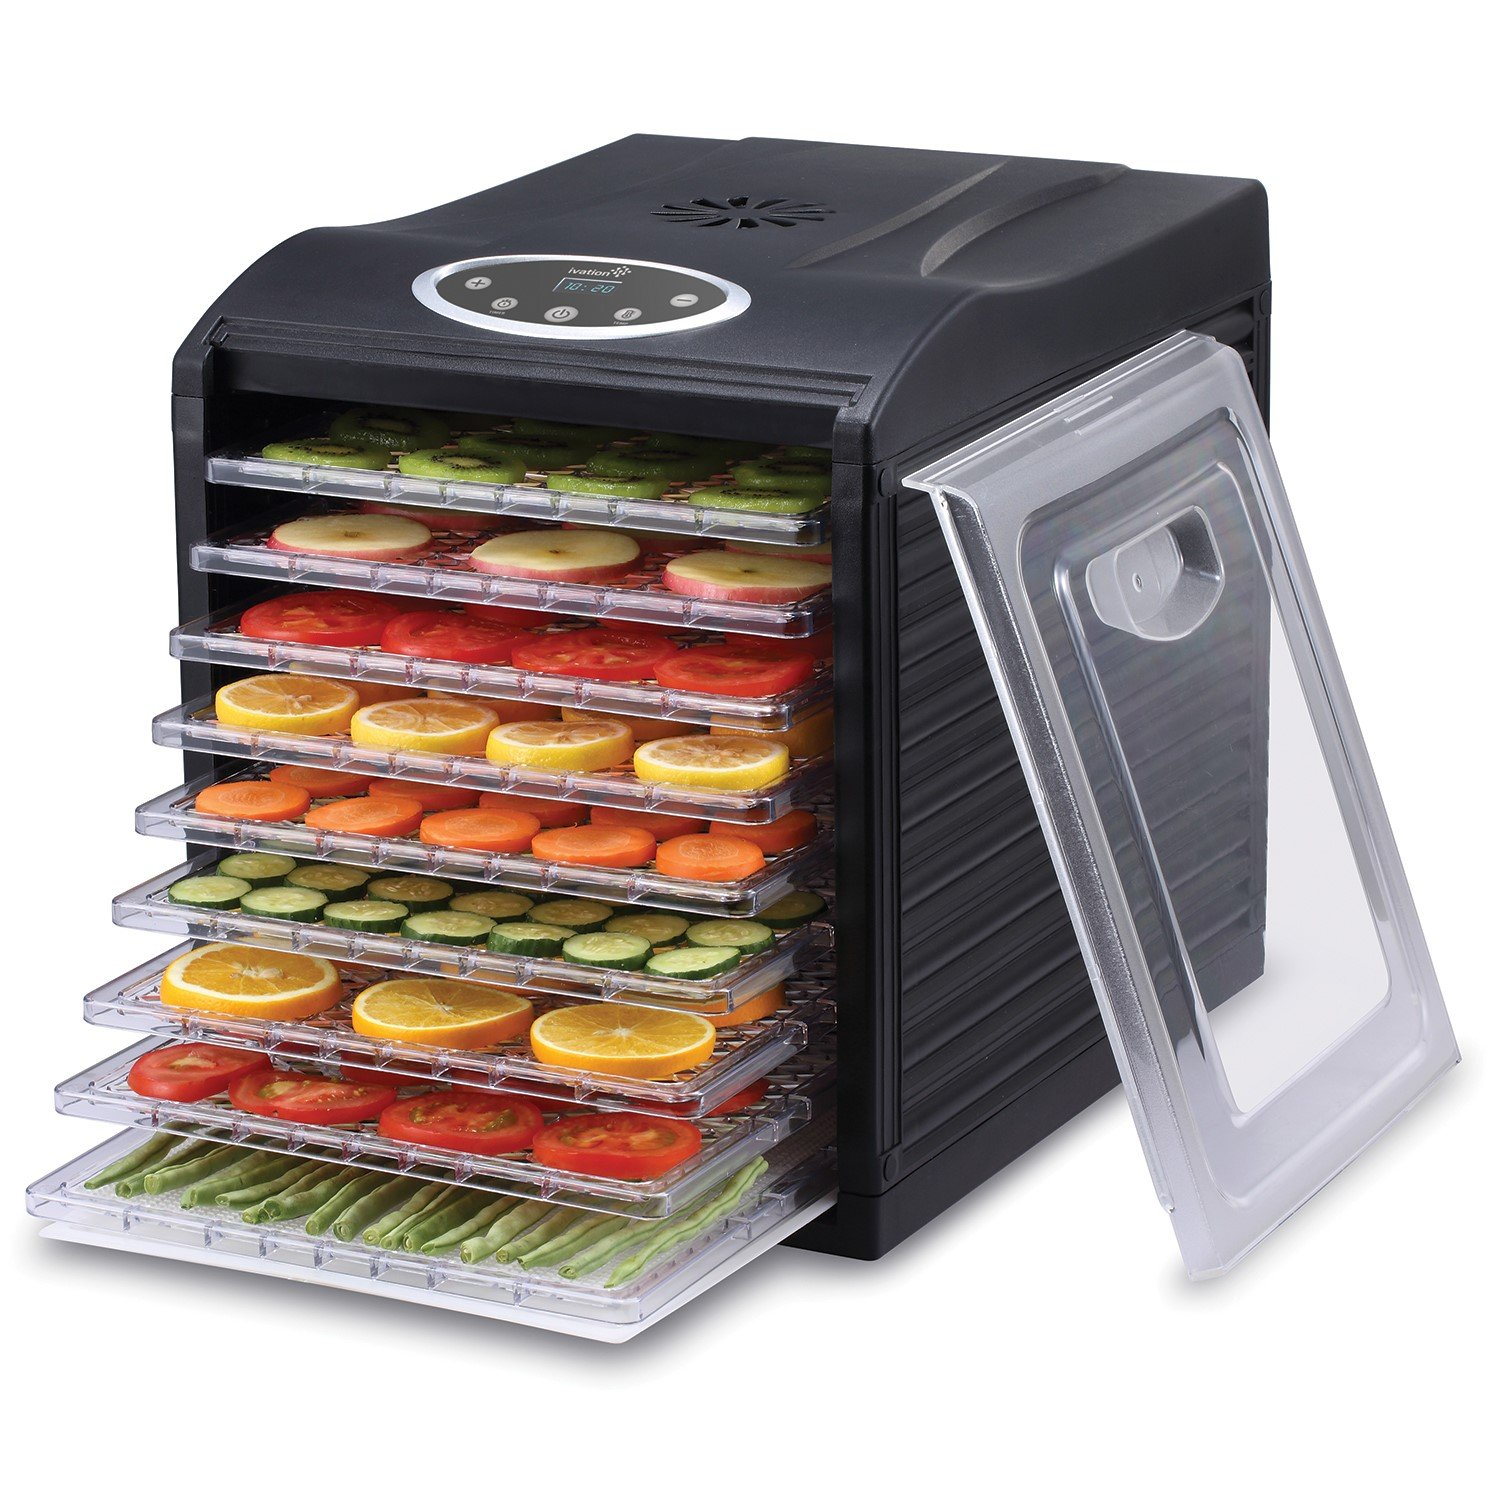 Ivation 600w Electric Food Dehydrator Pro with 9 Drying Trays, Digital Temperature Controls and Timer with Automatic Shutoff from 95ºF to 158ºF, for Beef Jerky, Dried Fruits, Vegetables & Nuts